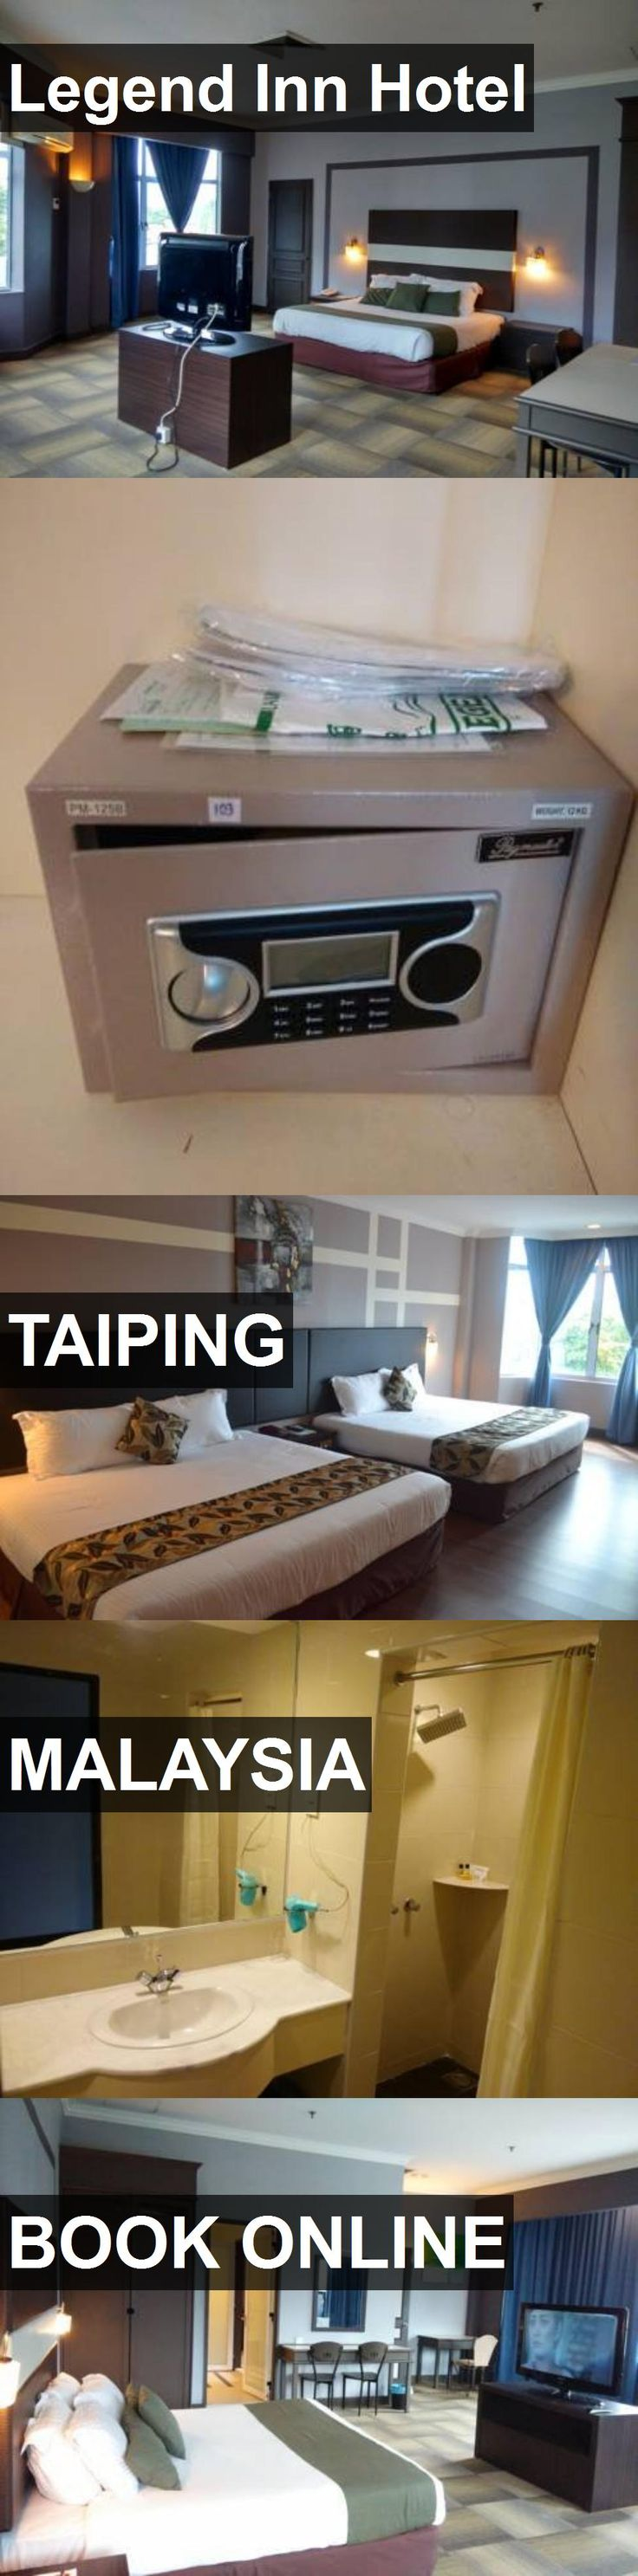 Hotel Legend Inn Hotel in Taiping, Malaysia. For more information, photos, reviews and best prices please follow the link. #Malaysia #Taiping #hotel #travel #vacation